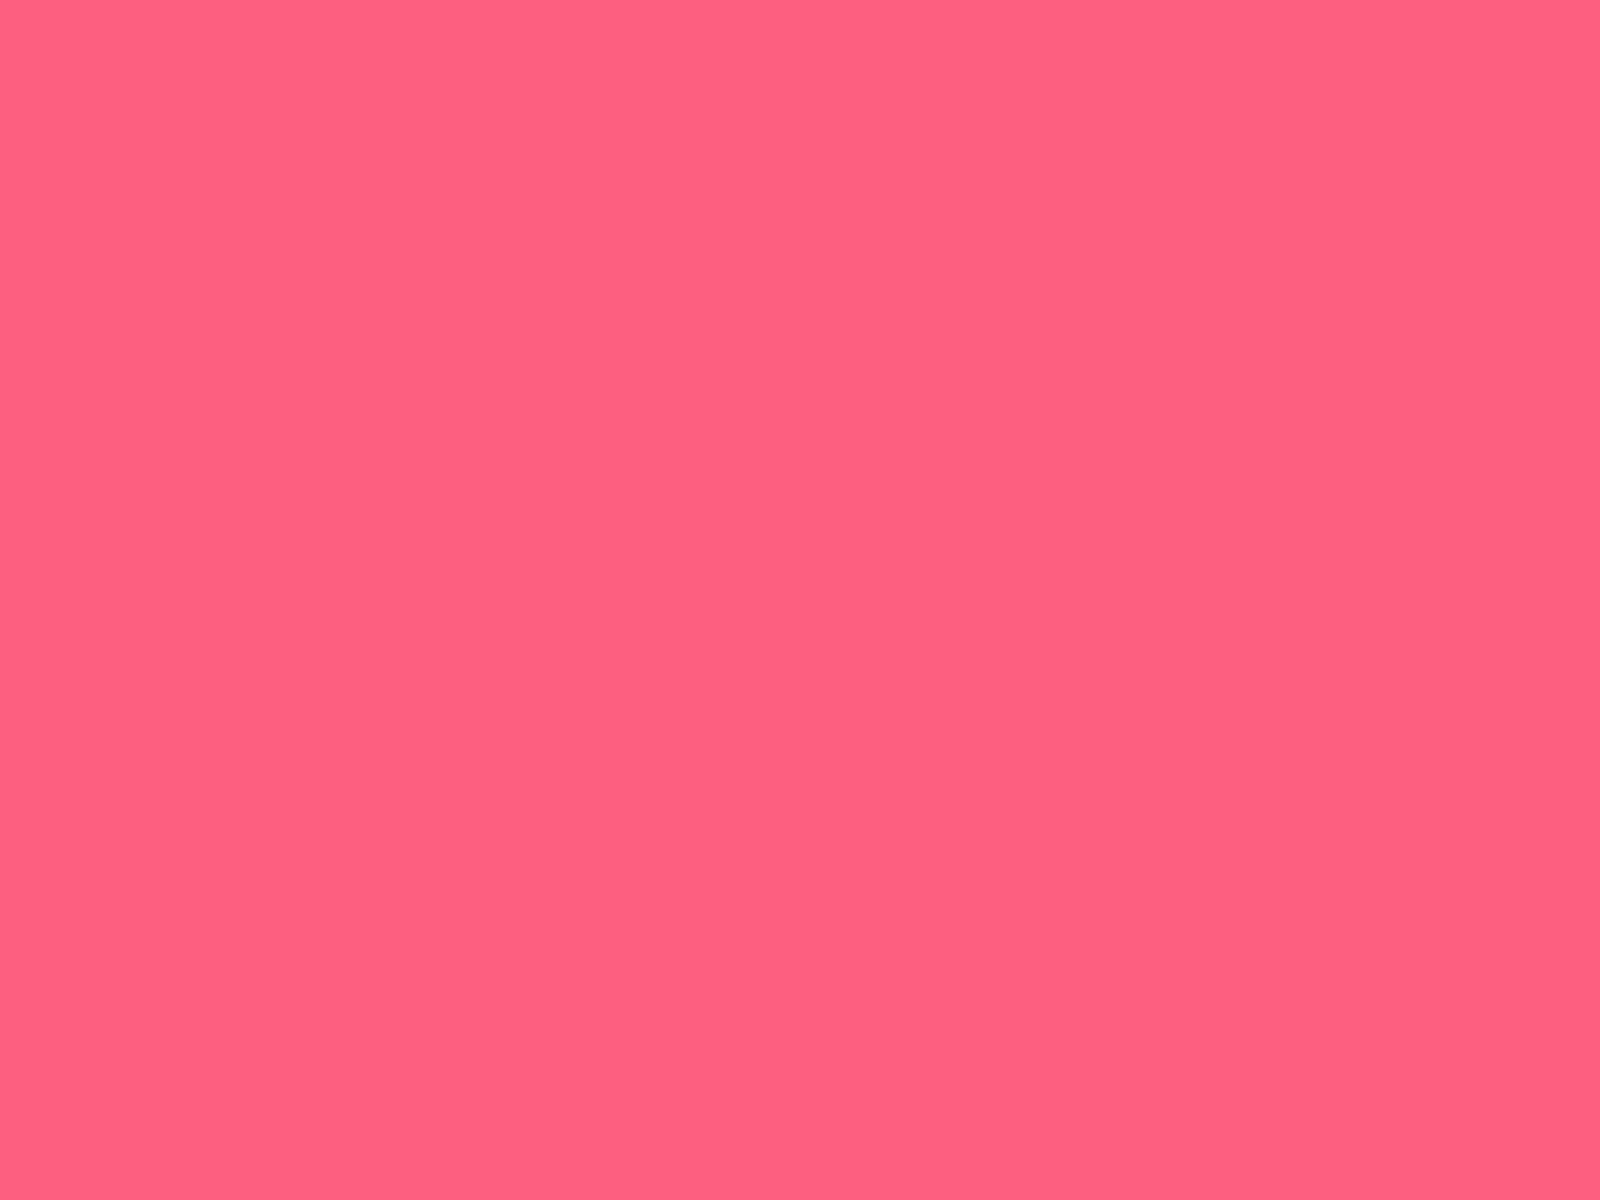 1600x1200 Brink Pink Solid Color Background